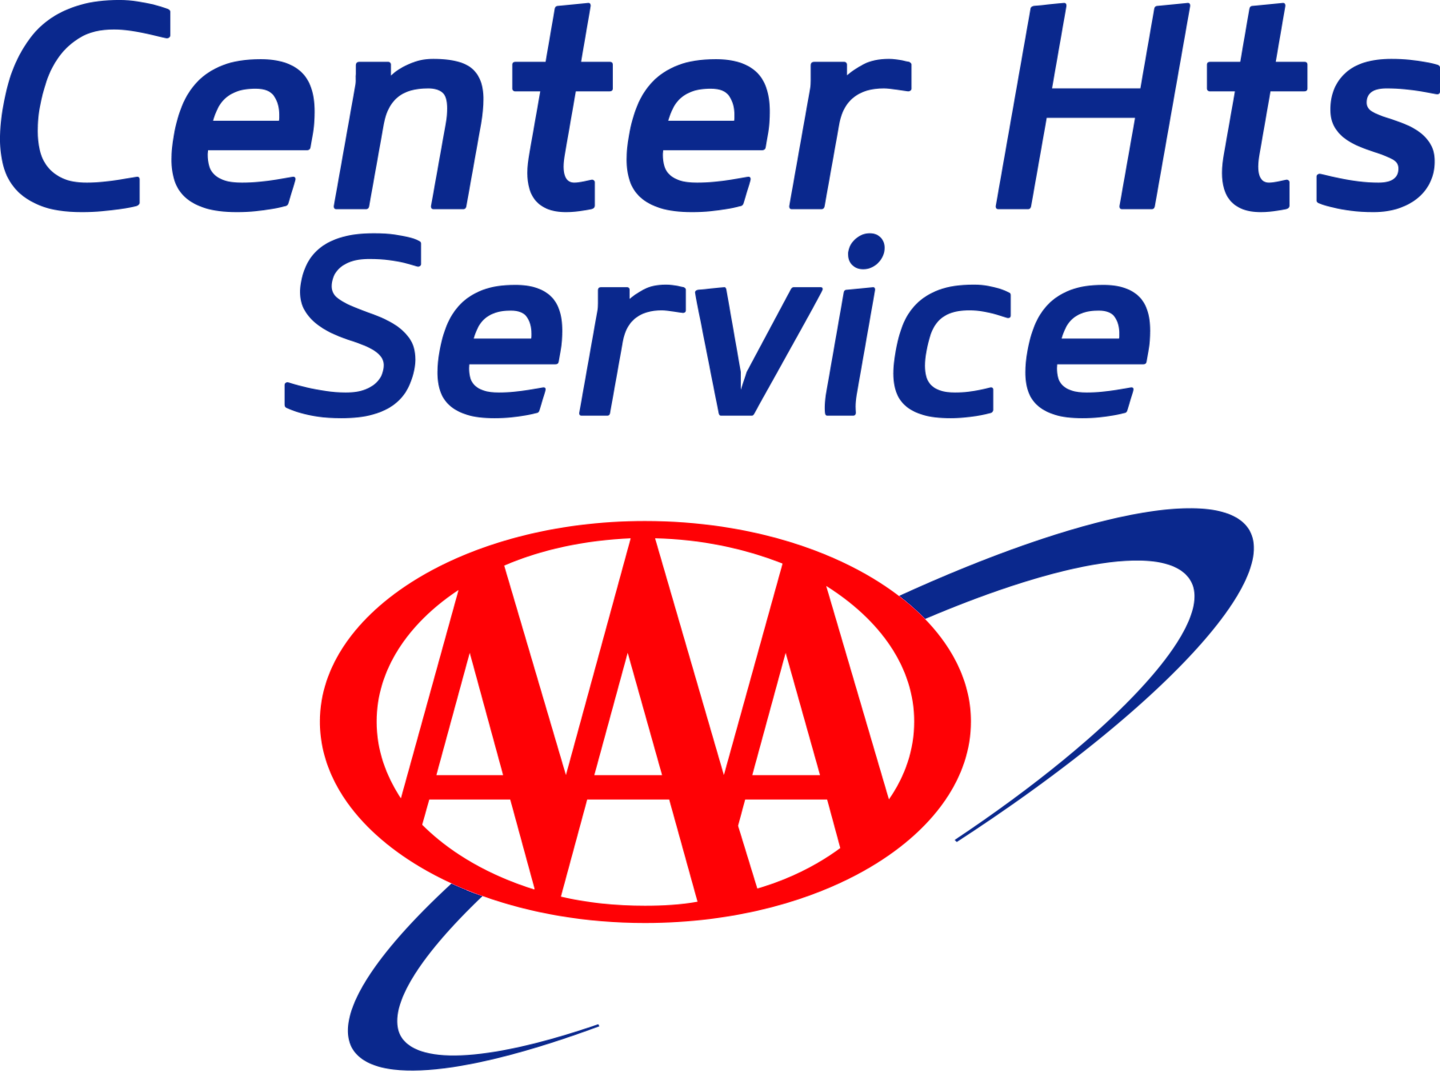 CENTER HEIGHTS SERVICE